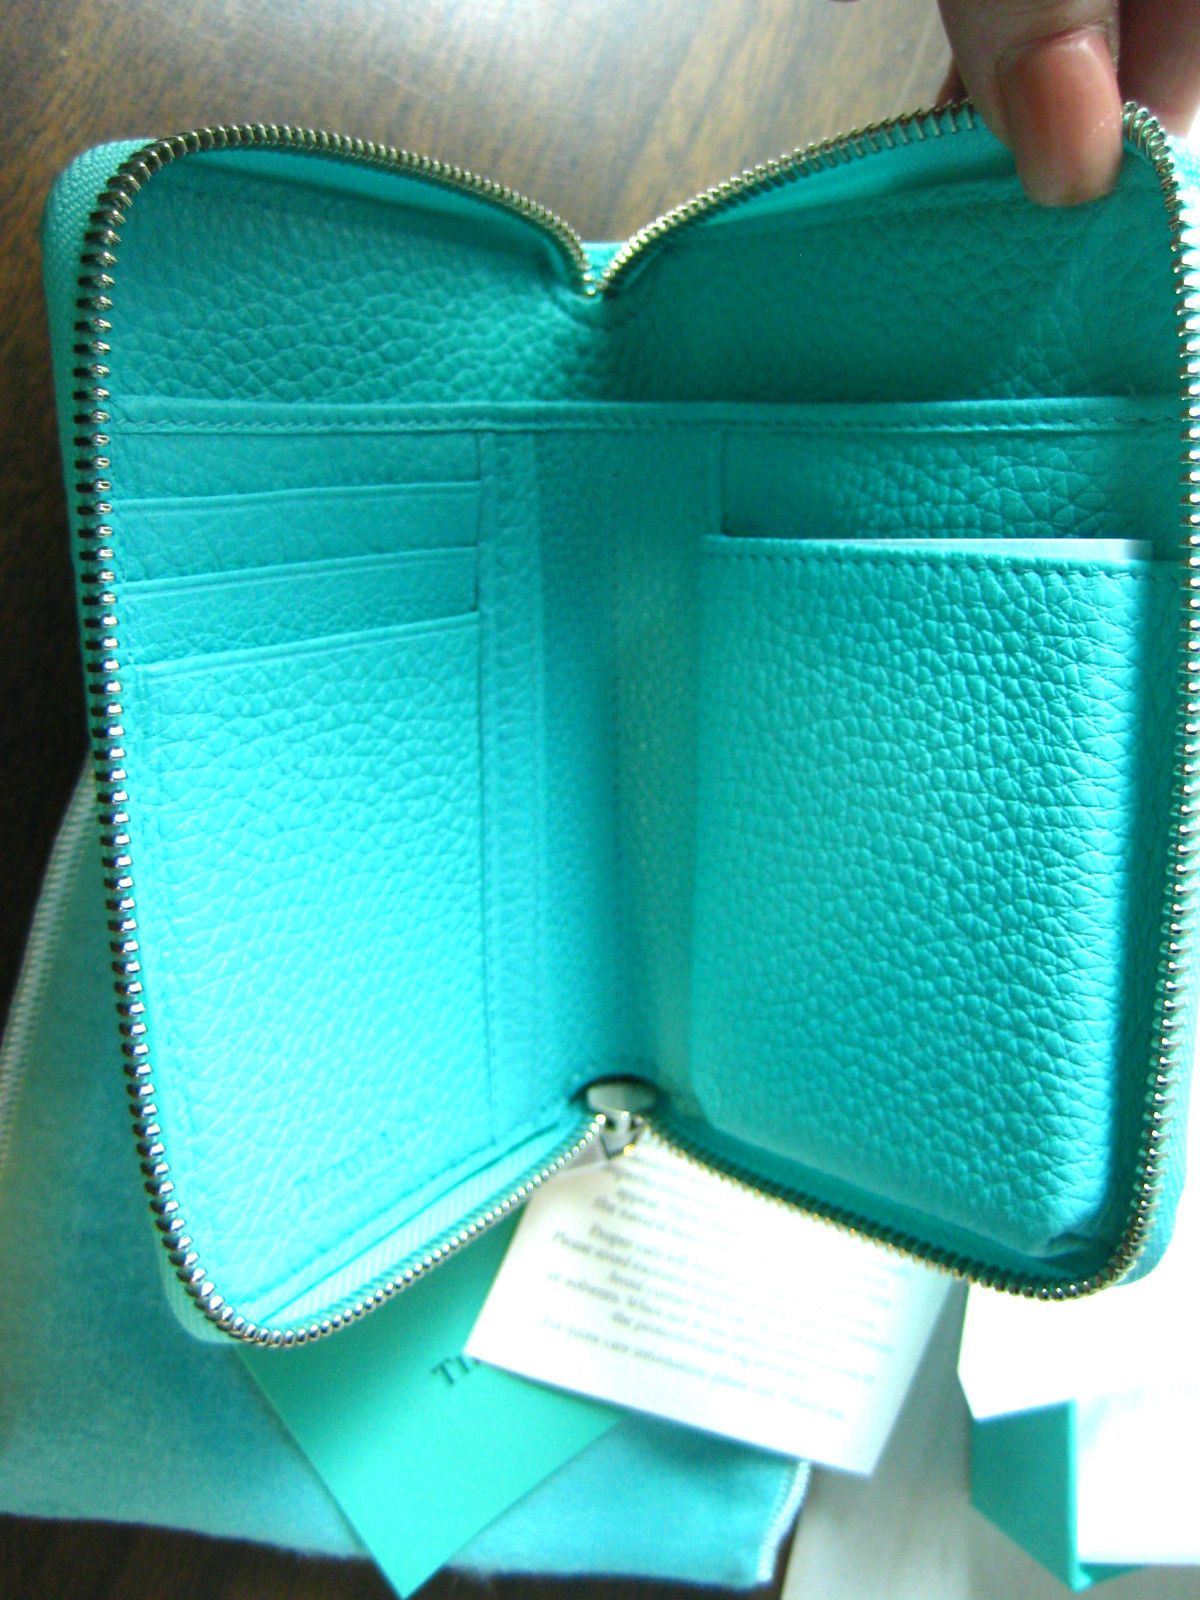 45029d1fcd Tiffany Co Blue Leather Zip Around Wallet with Smart Phone Pocket | eBay